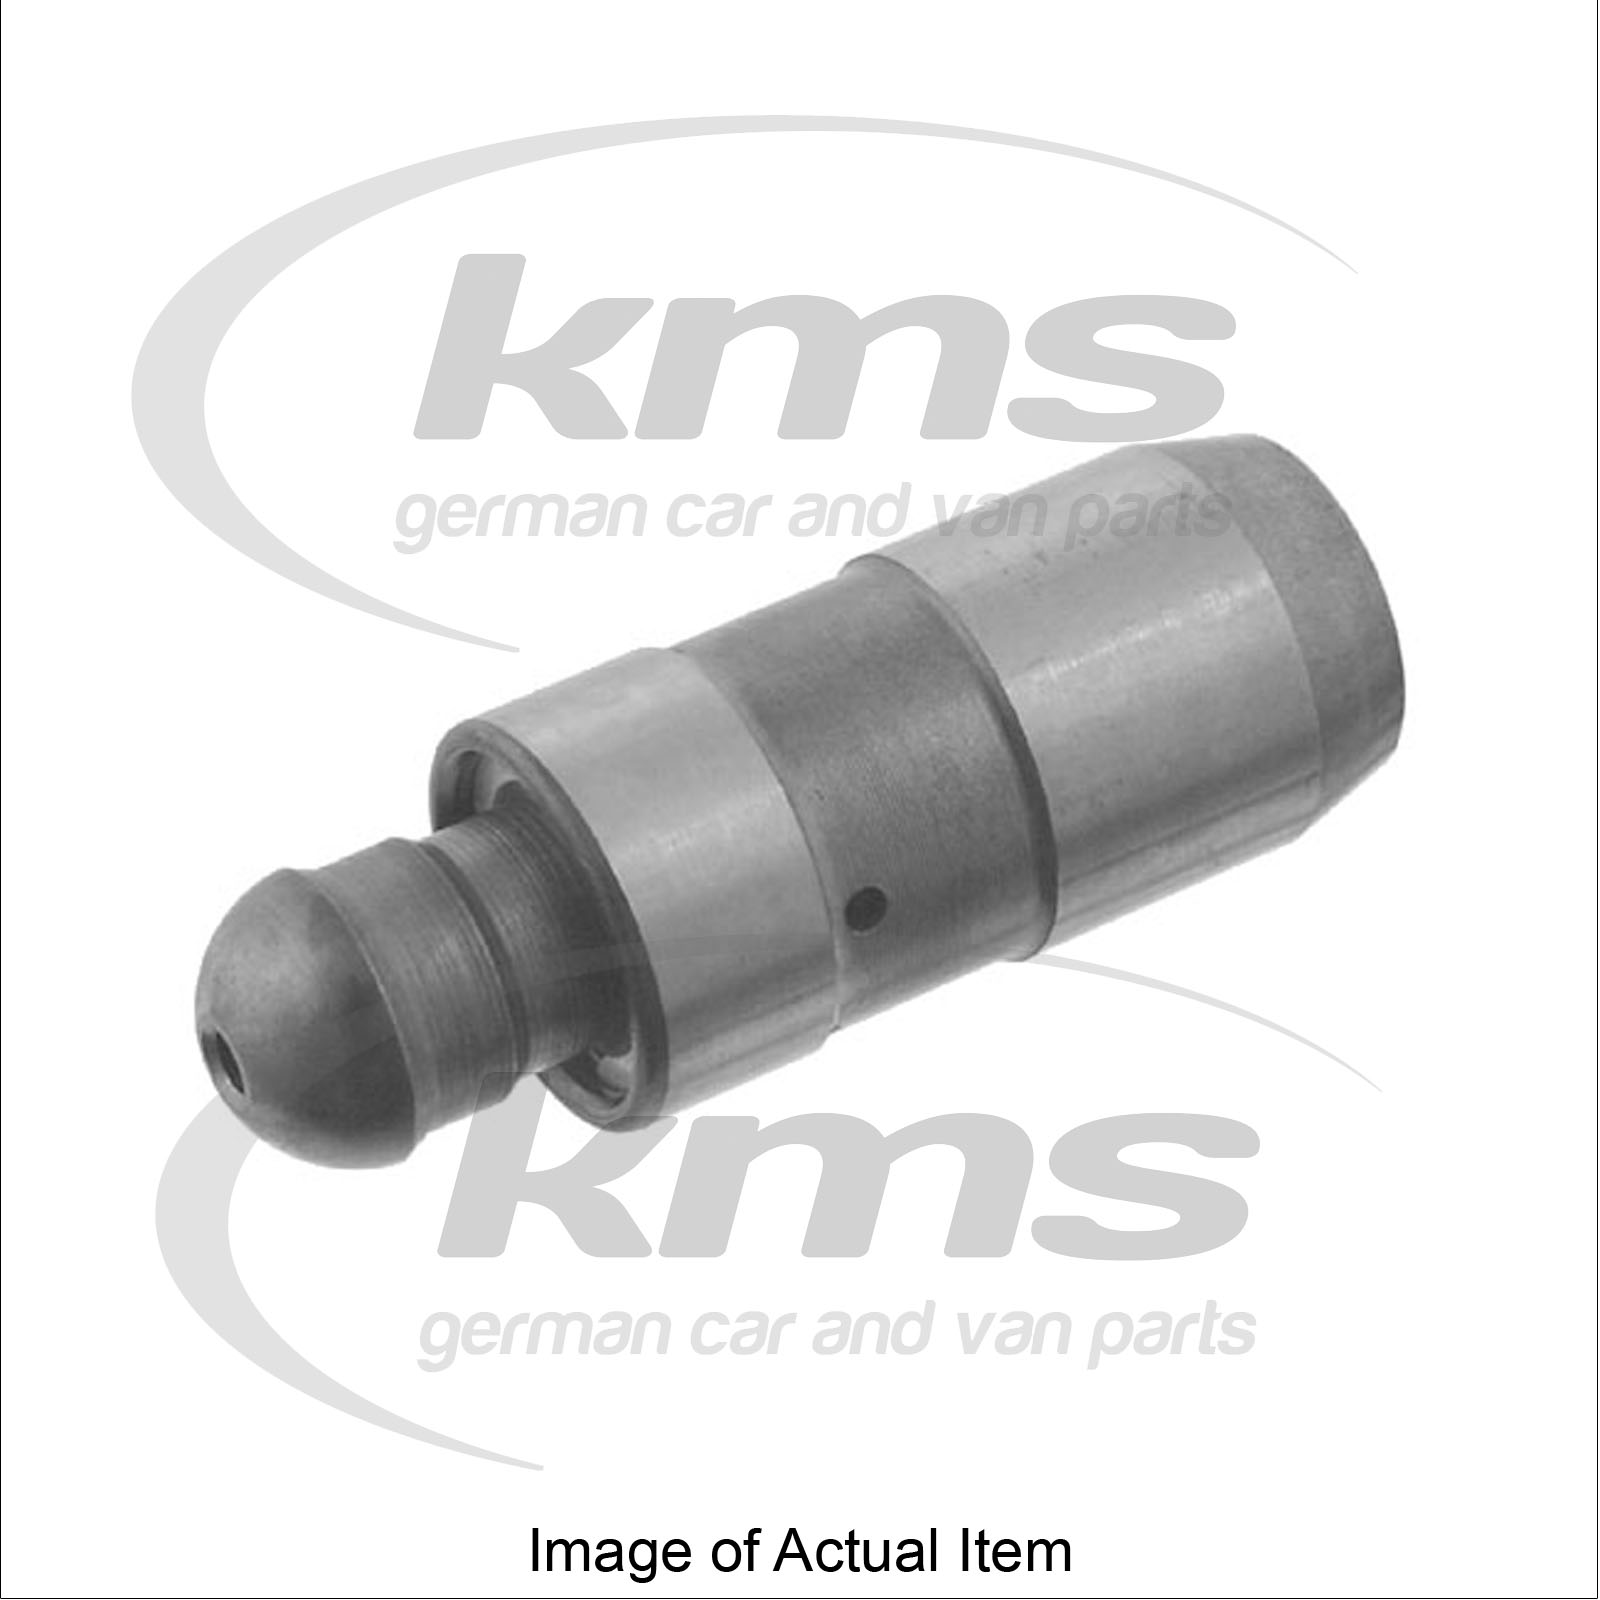 HYDRAULIC CAM FOLLOWER Mercedes Benz C Class Coupe C180Kompressor CL203 1.8L - 1